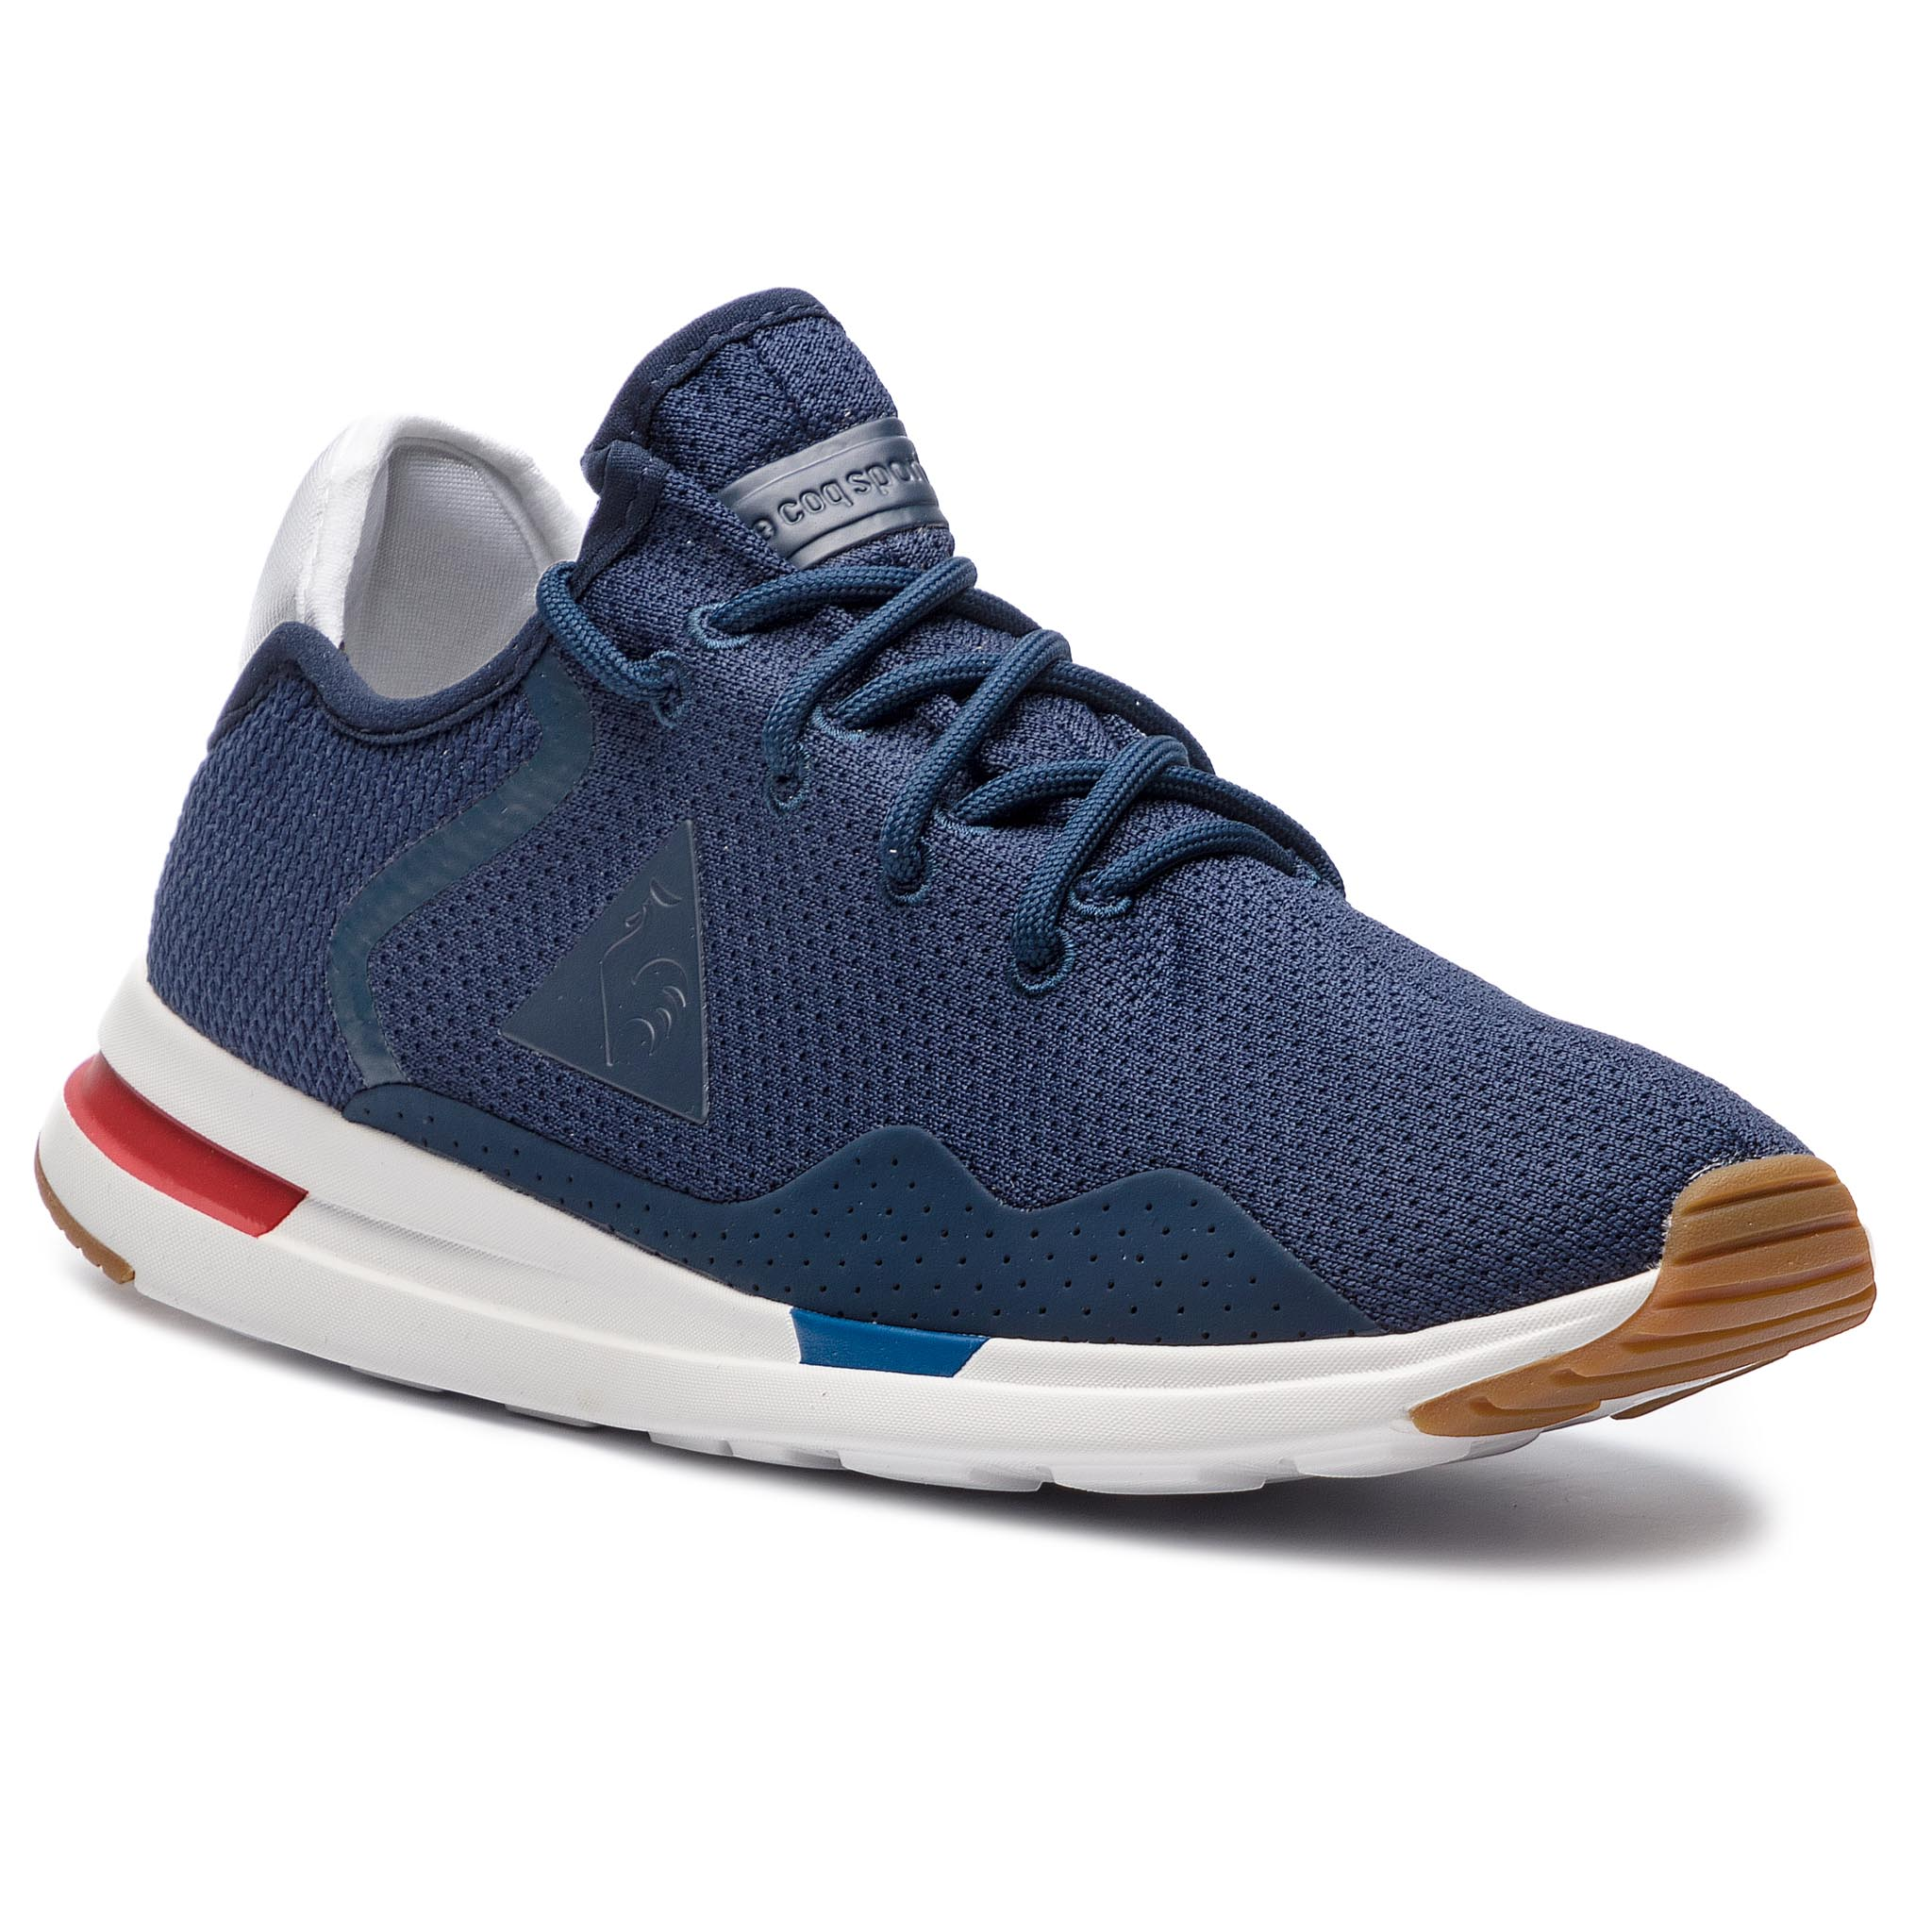 Sneakers LE COQ SPORTIF - Solas Sport 1820237 Dress Blue/Optical White